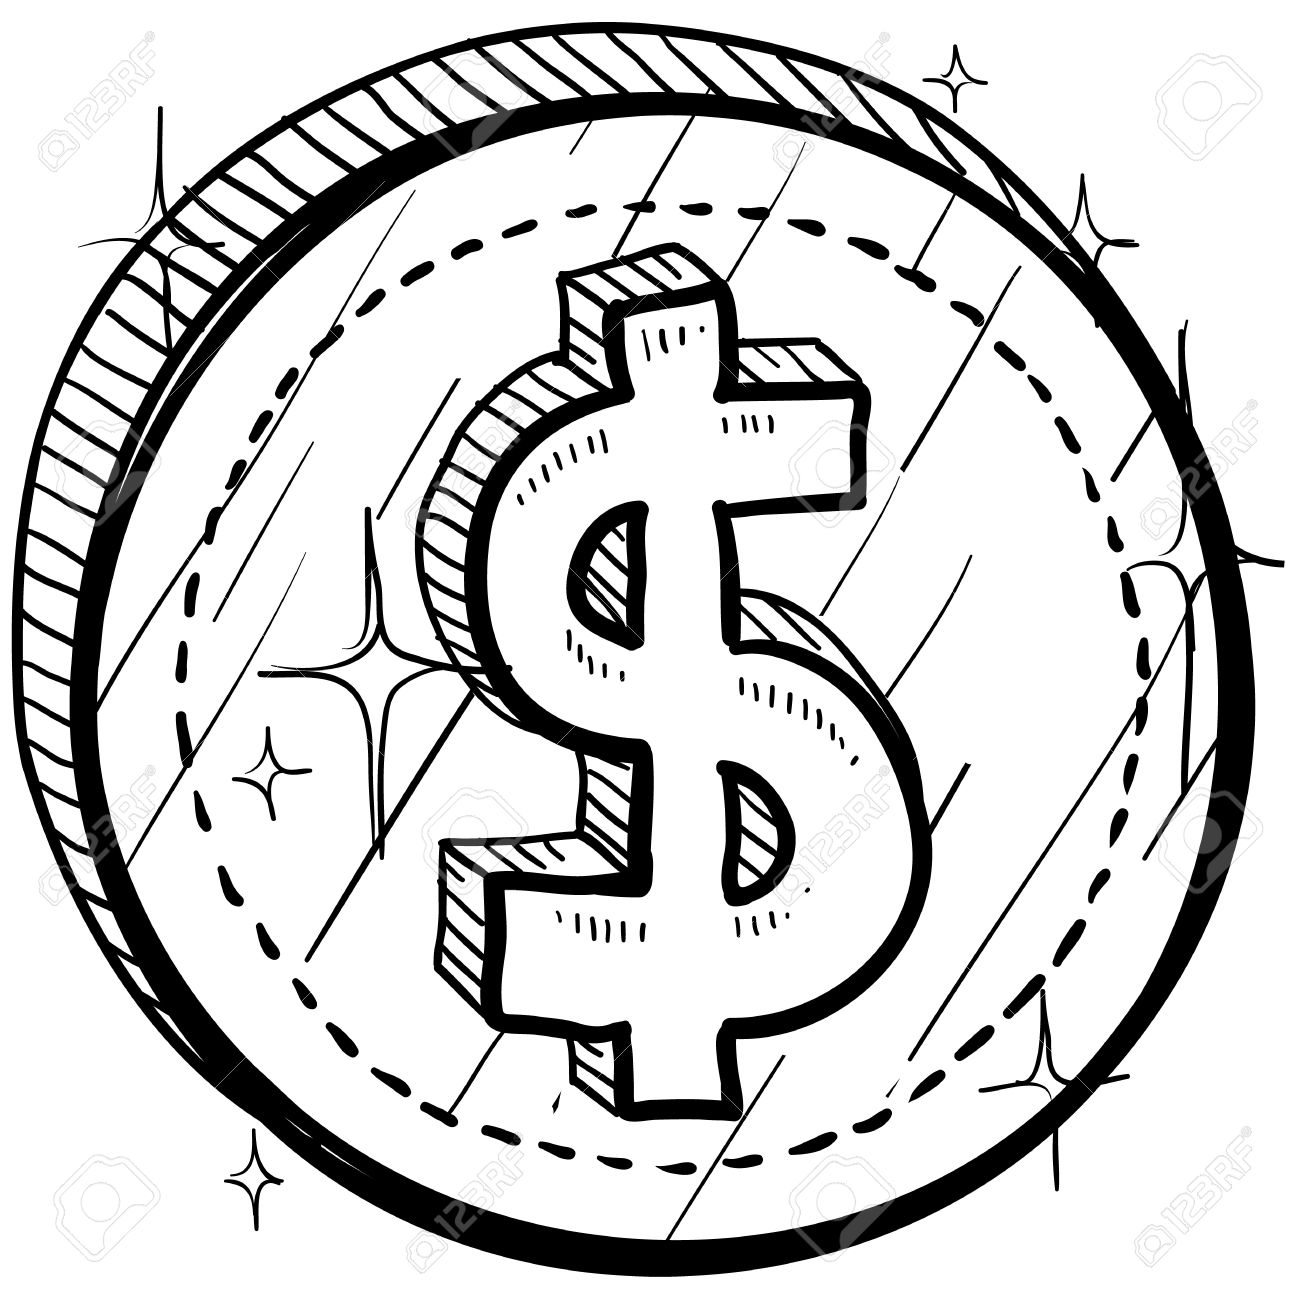 Doodle style coin with currency symbol american dollar doodle style coin with currency symbol american dollar foto de archivo 14460856 biocorpaavc Image collections